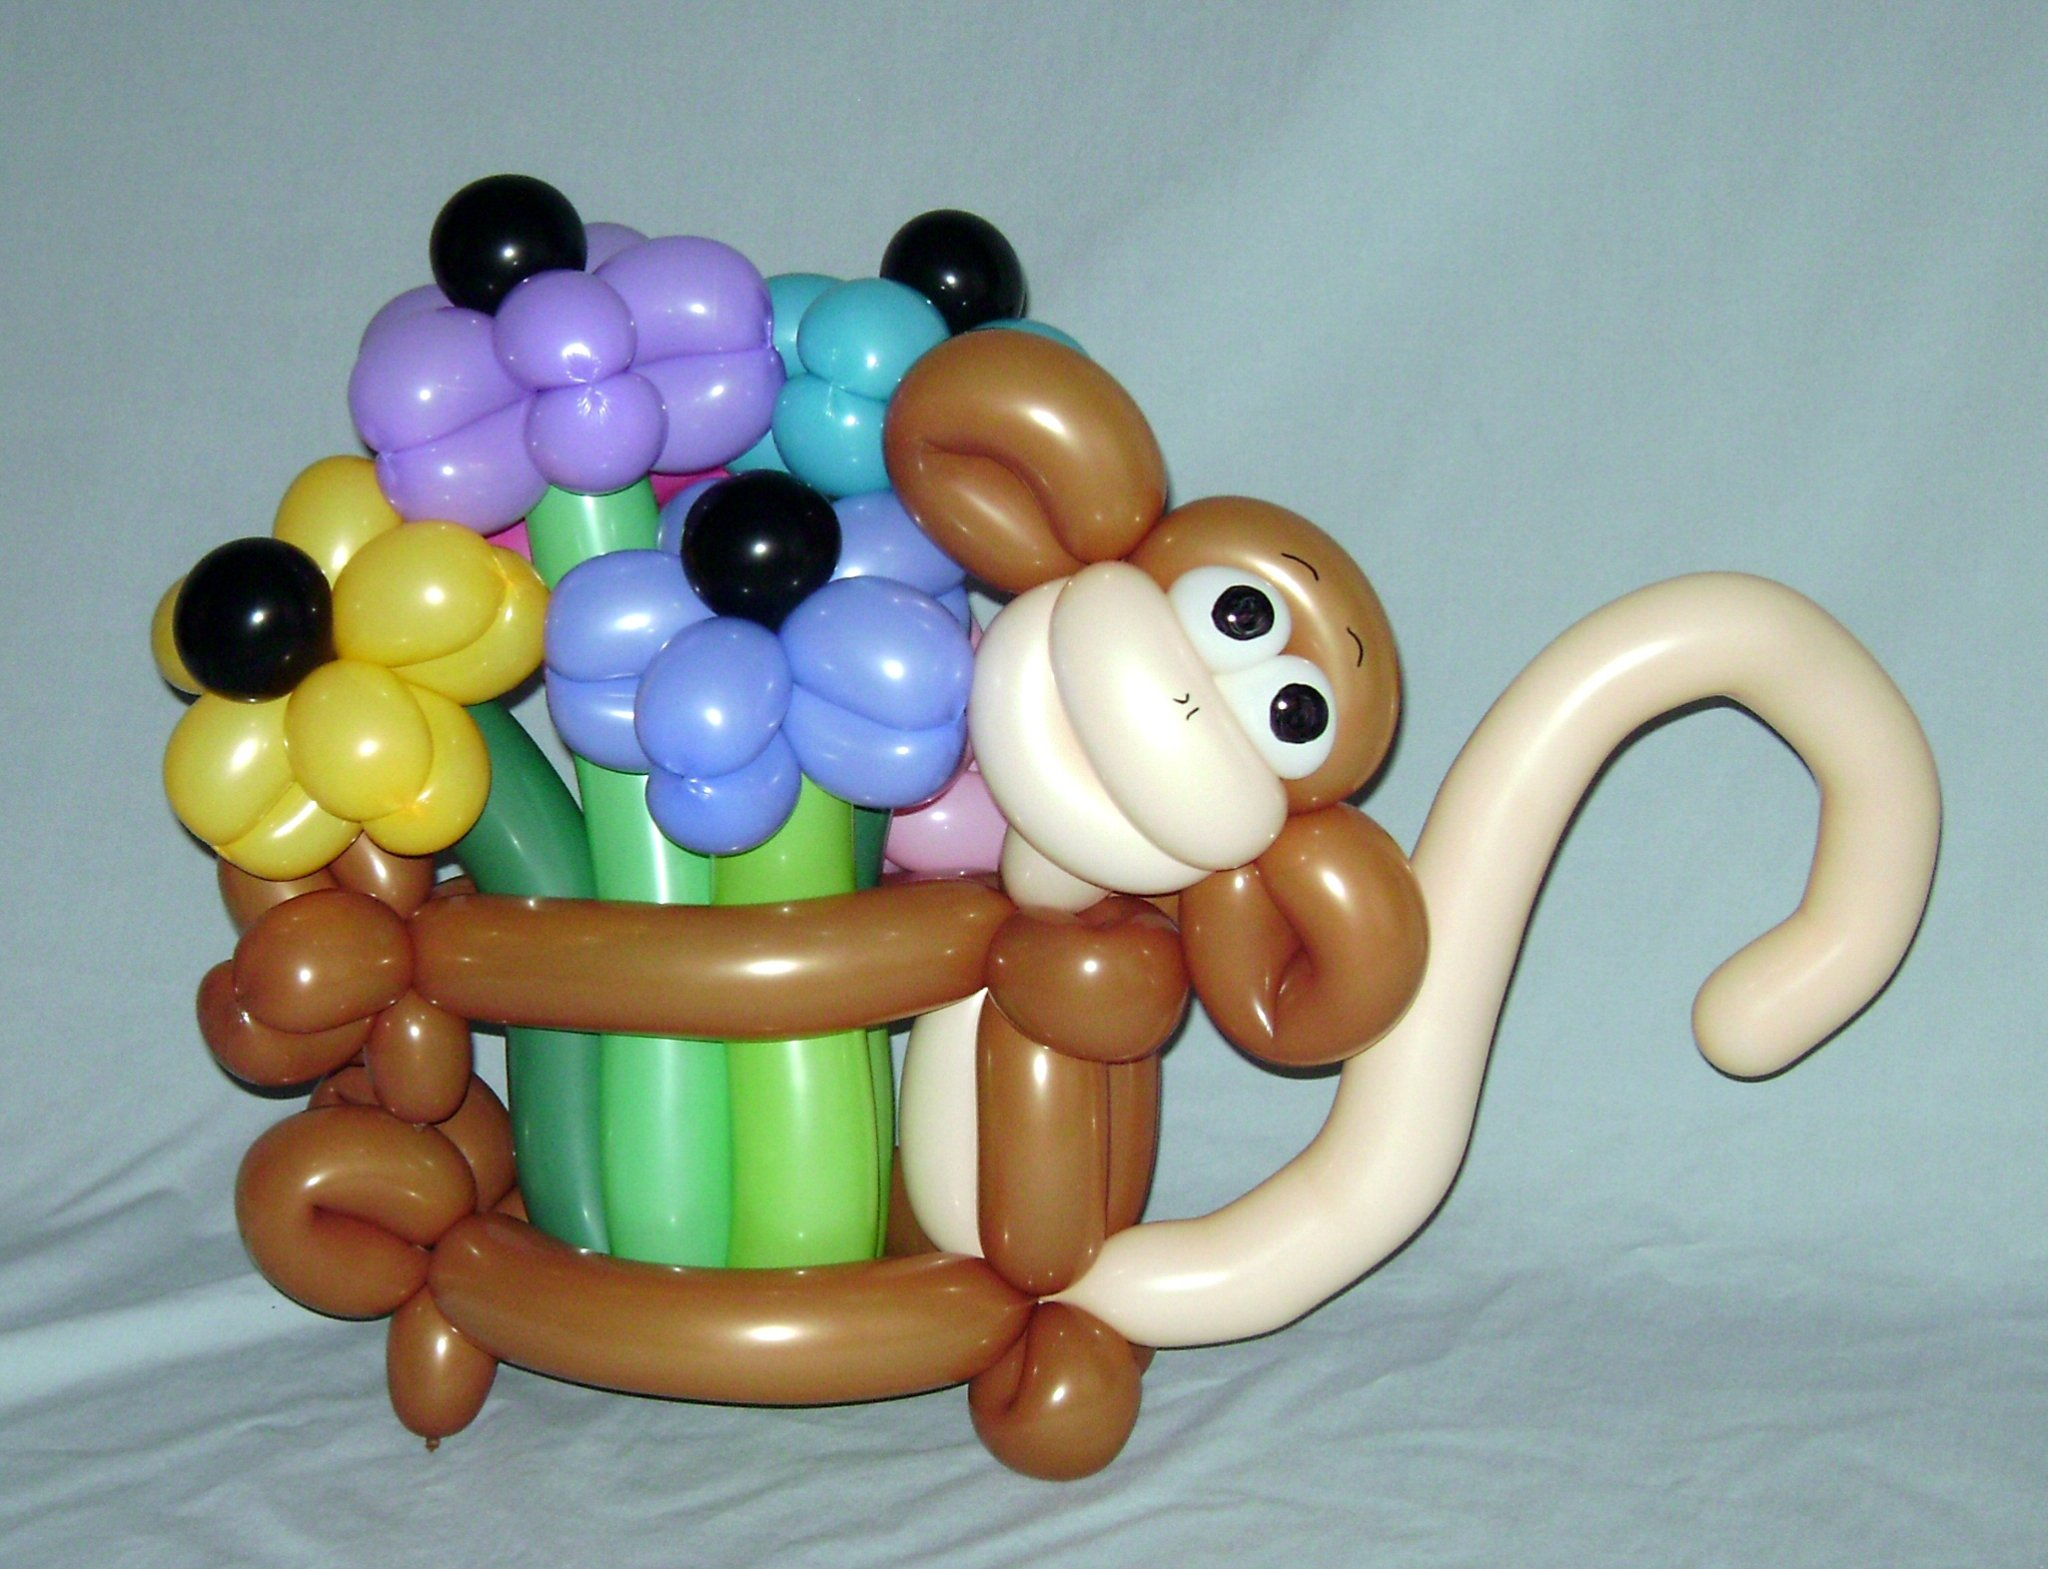 SAMMY J Balloon Creations st louis balloons monkey flowers